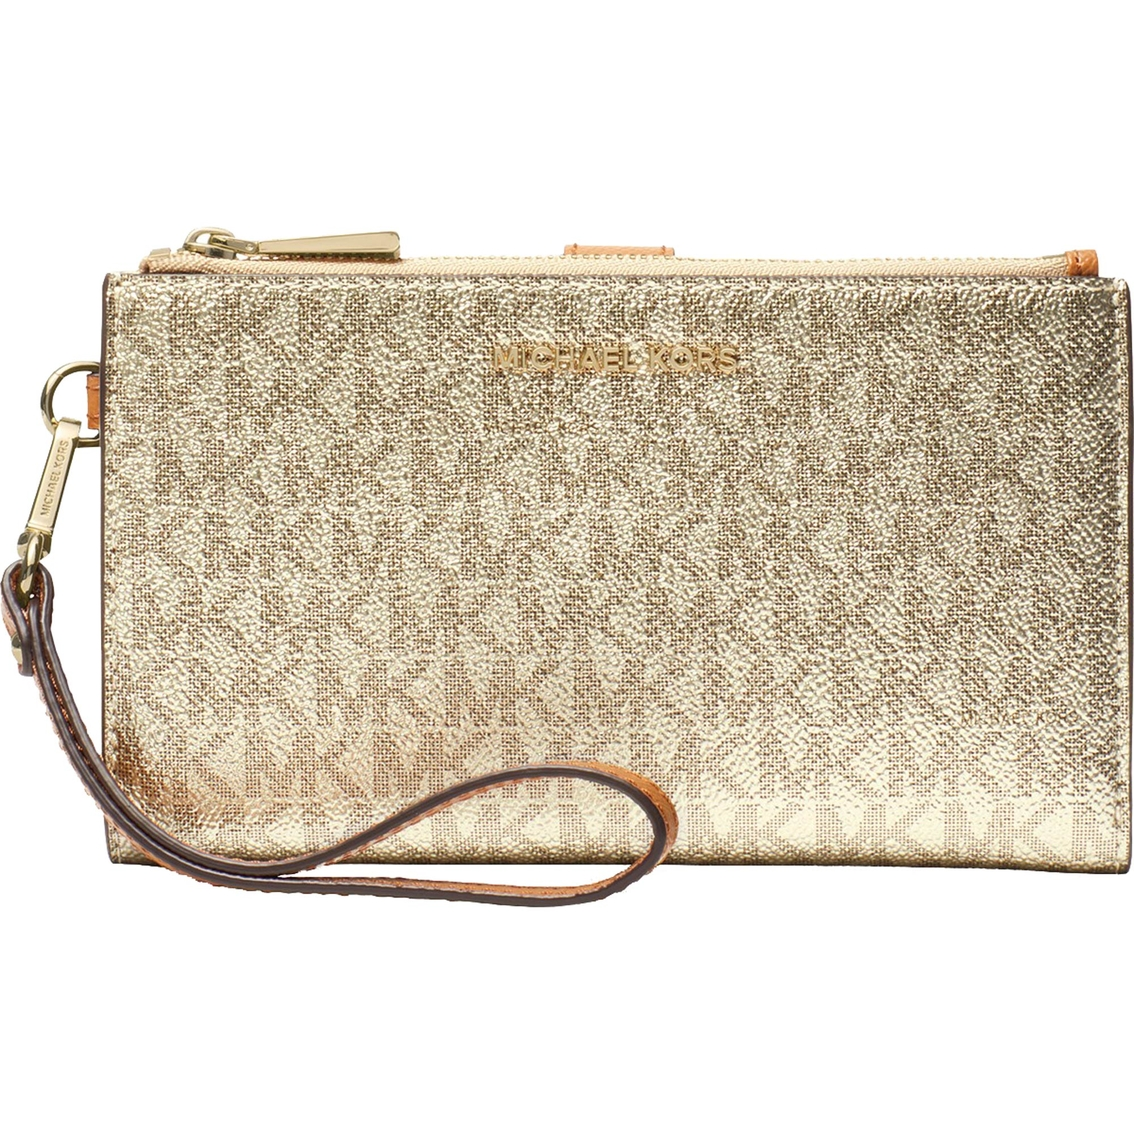 6651515a0820f4 Michael Kors Double Zip Wristlet | Wristlets, Clutches | Handbags ...